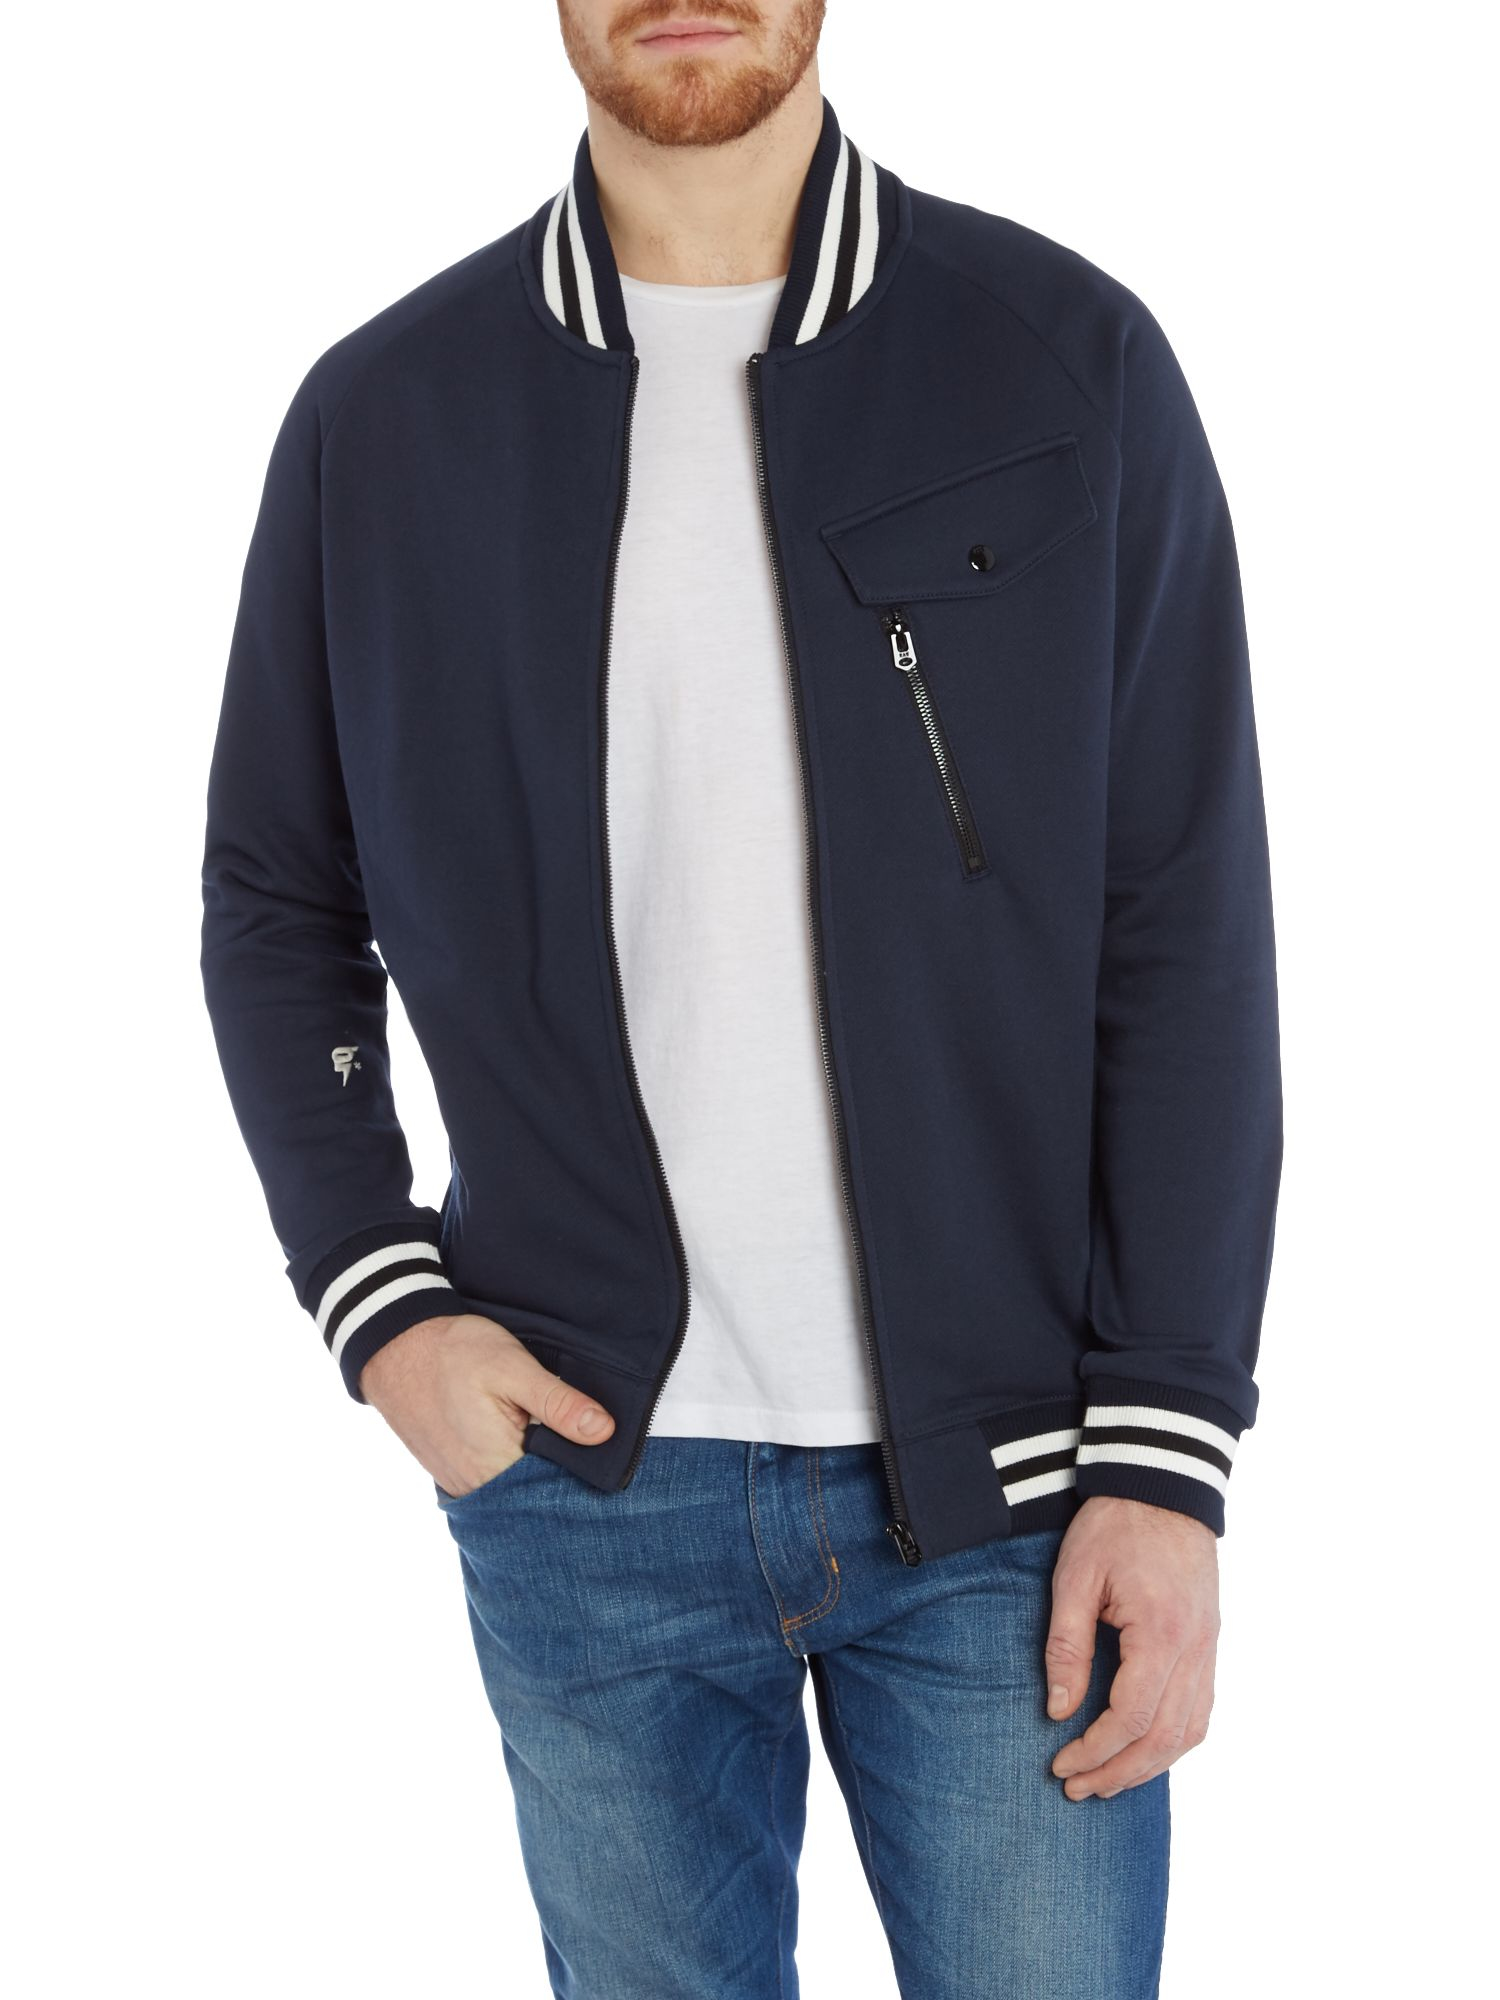 g star raw frockt varisty sweat bomber jacket in blue for men lyst. Black Bedroom Furniture Sets. Home Design Ideas